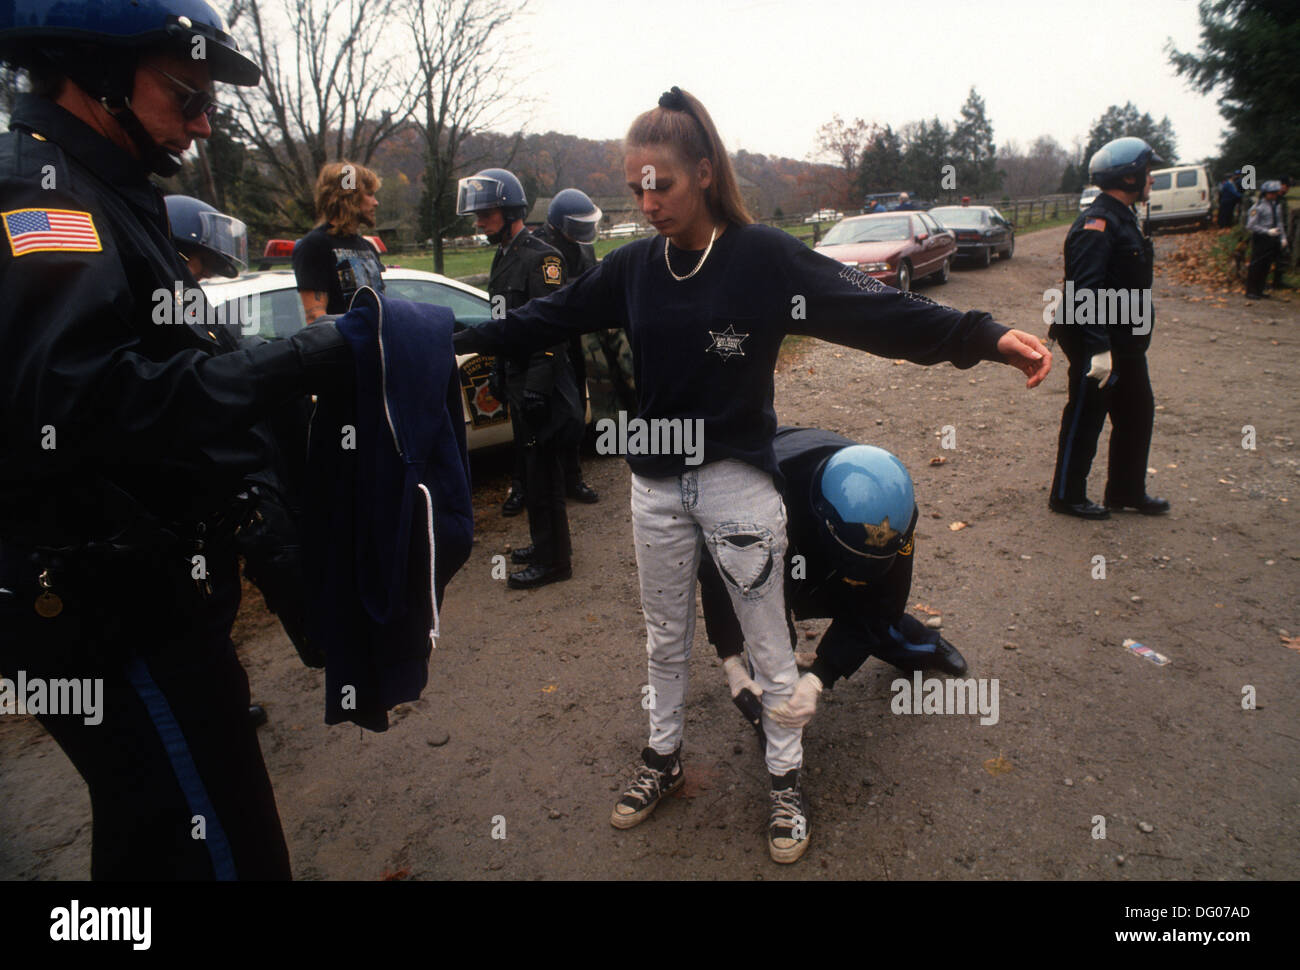 Washington's Crossing, PA - 6 Nov 1993 Pennsylvania State Police stop and frisk a female skinhead for weapons. - Stock Image